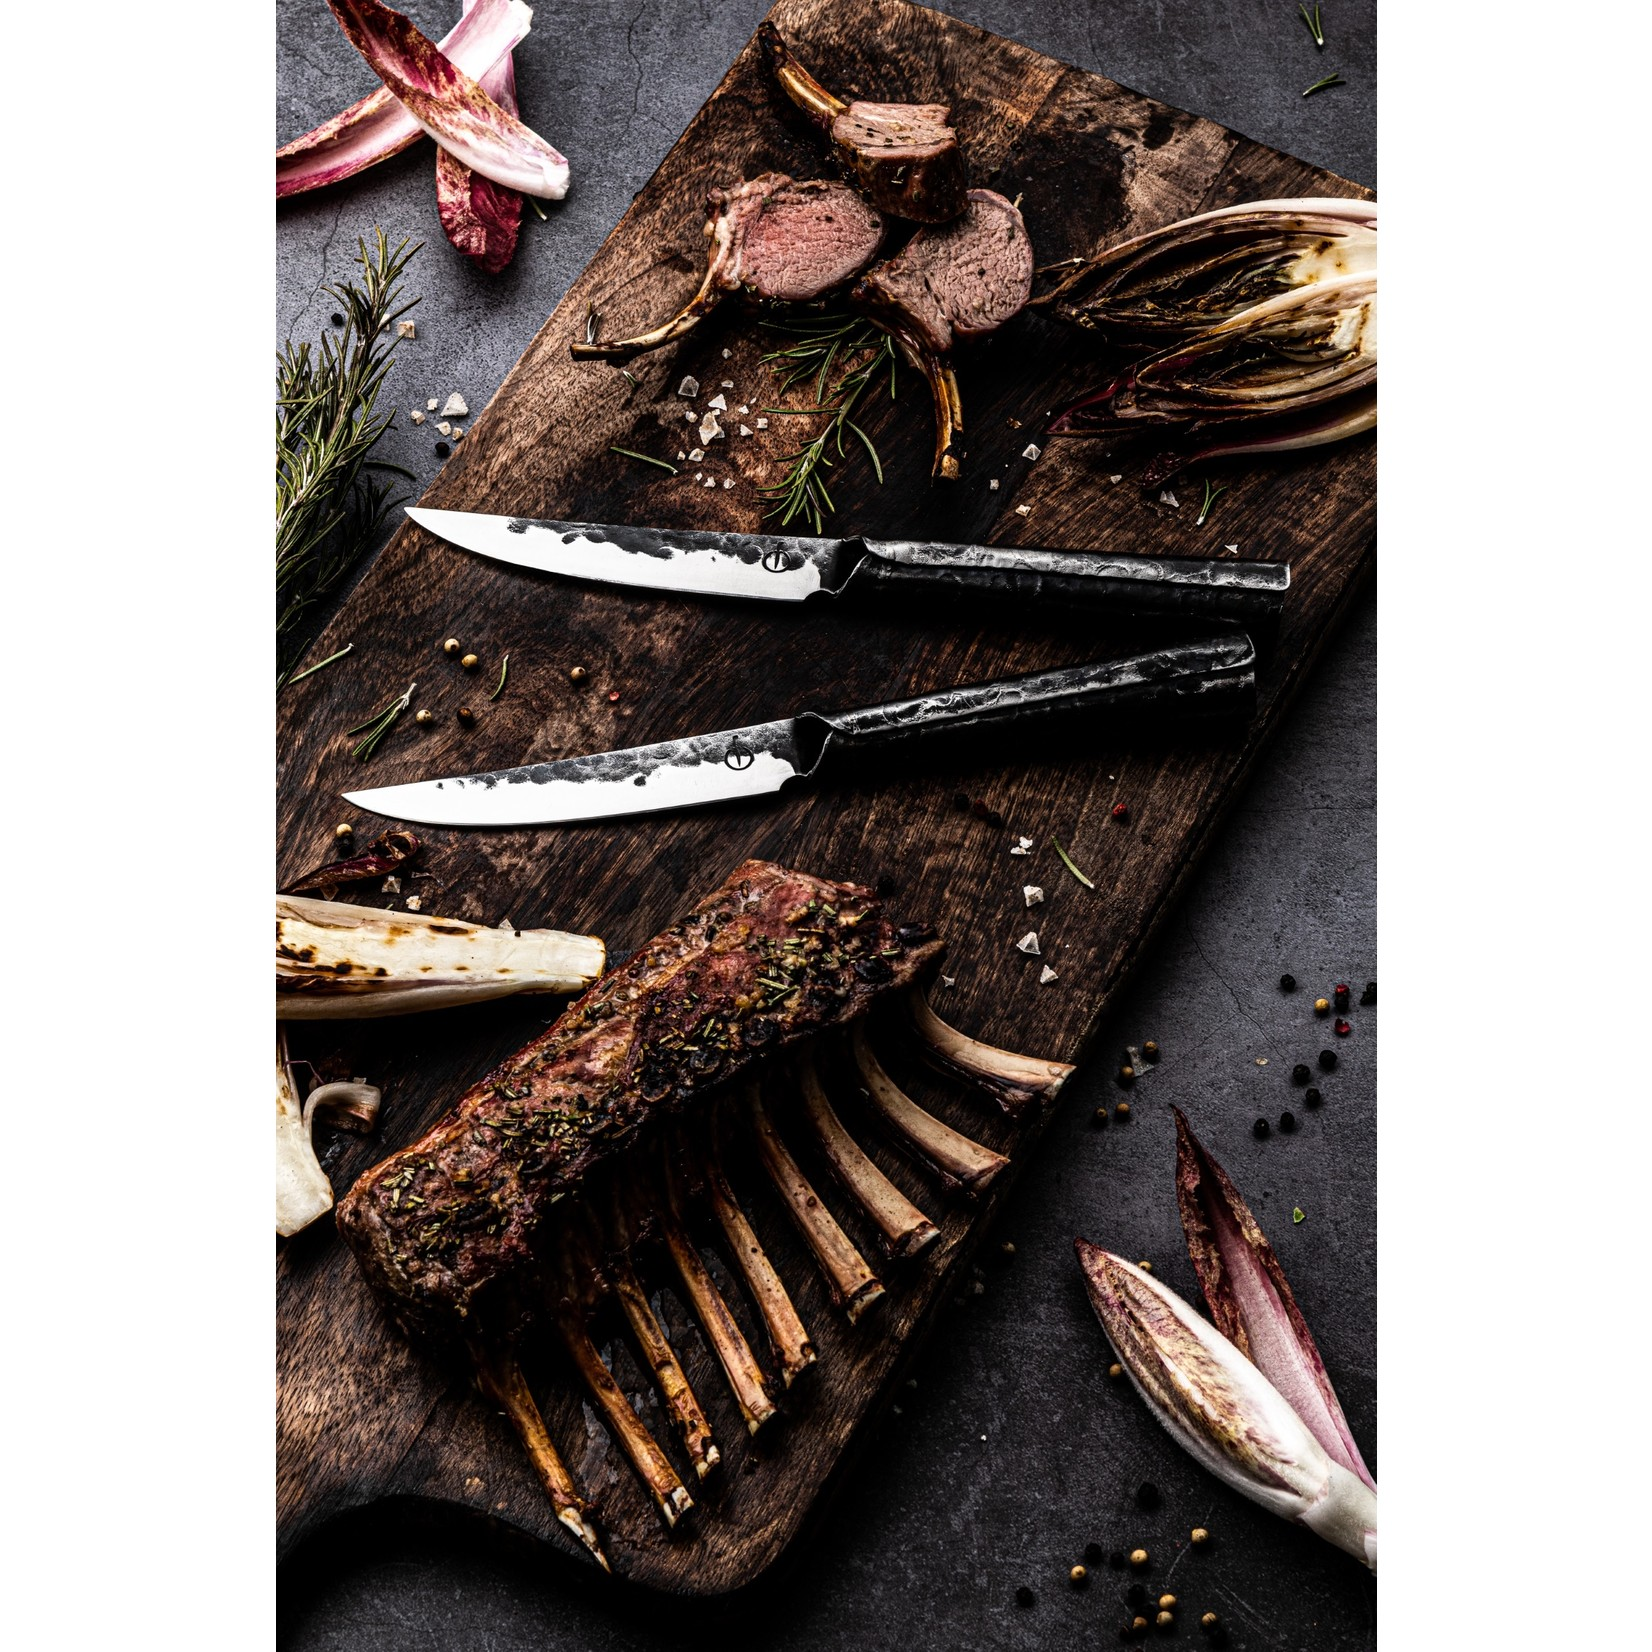 Forged Forged Brute steakmessenset 4-delig